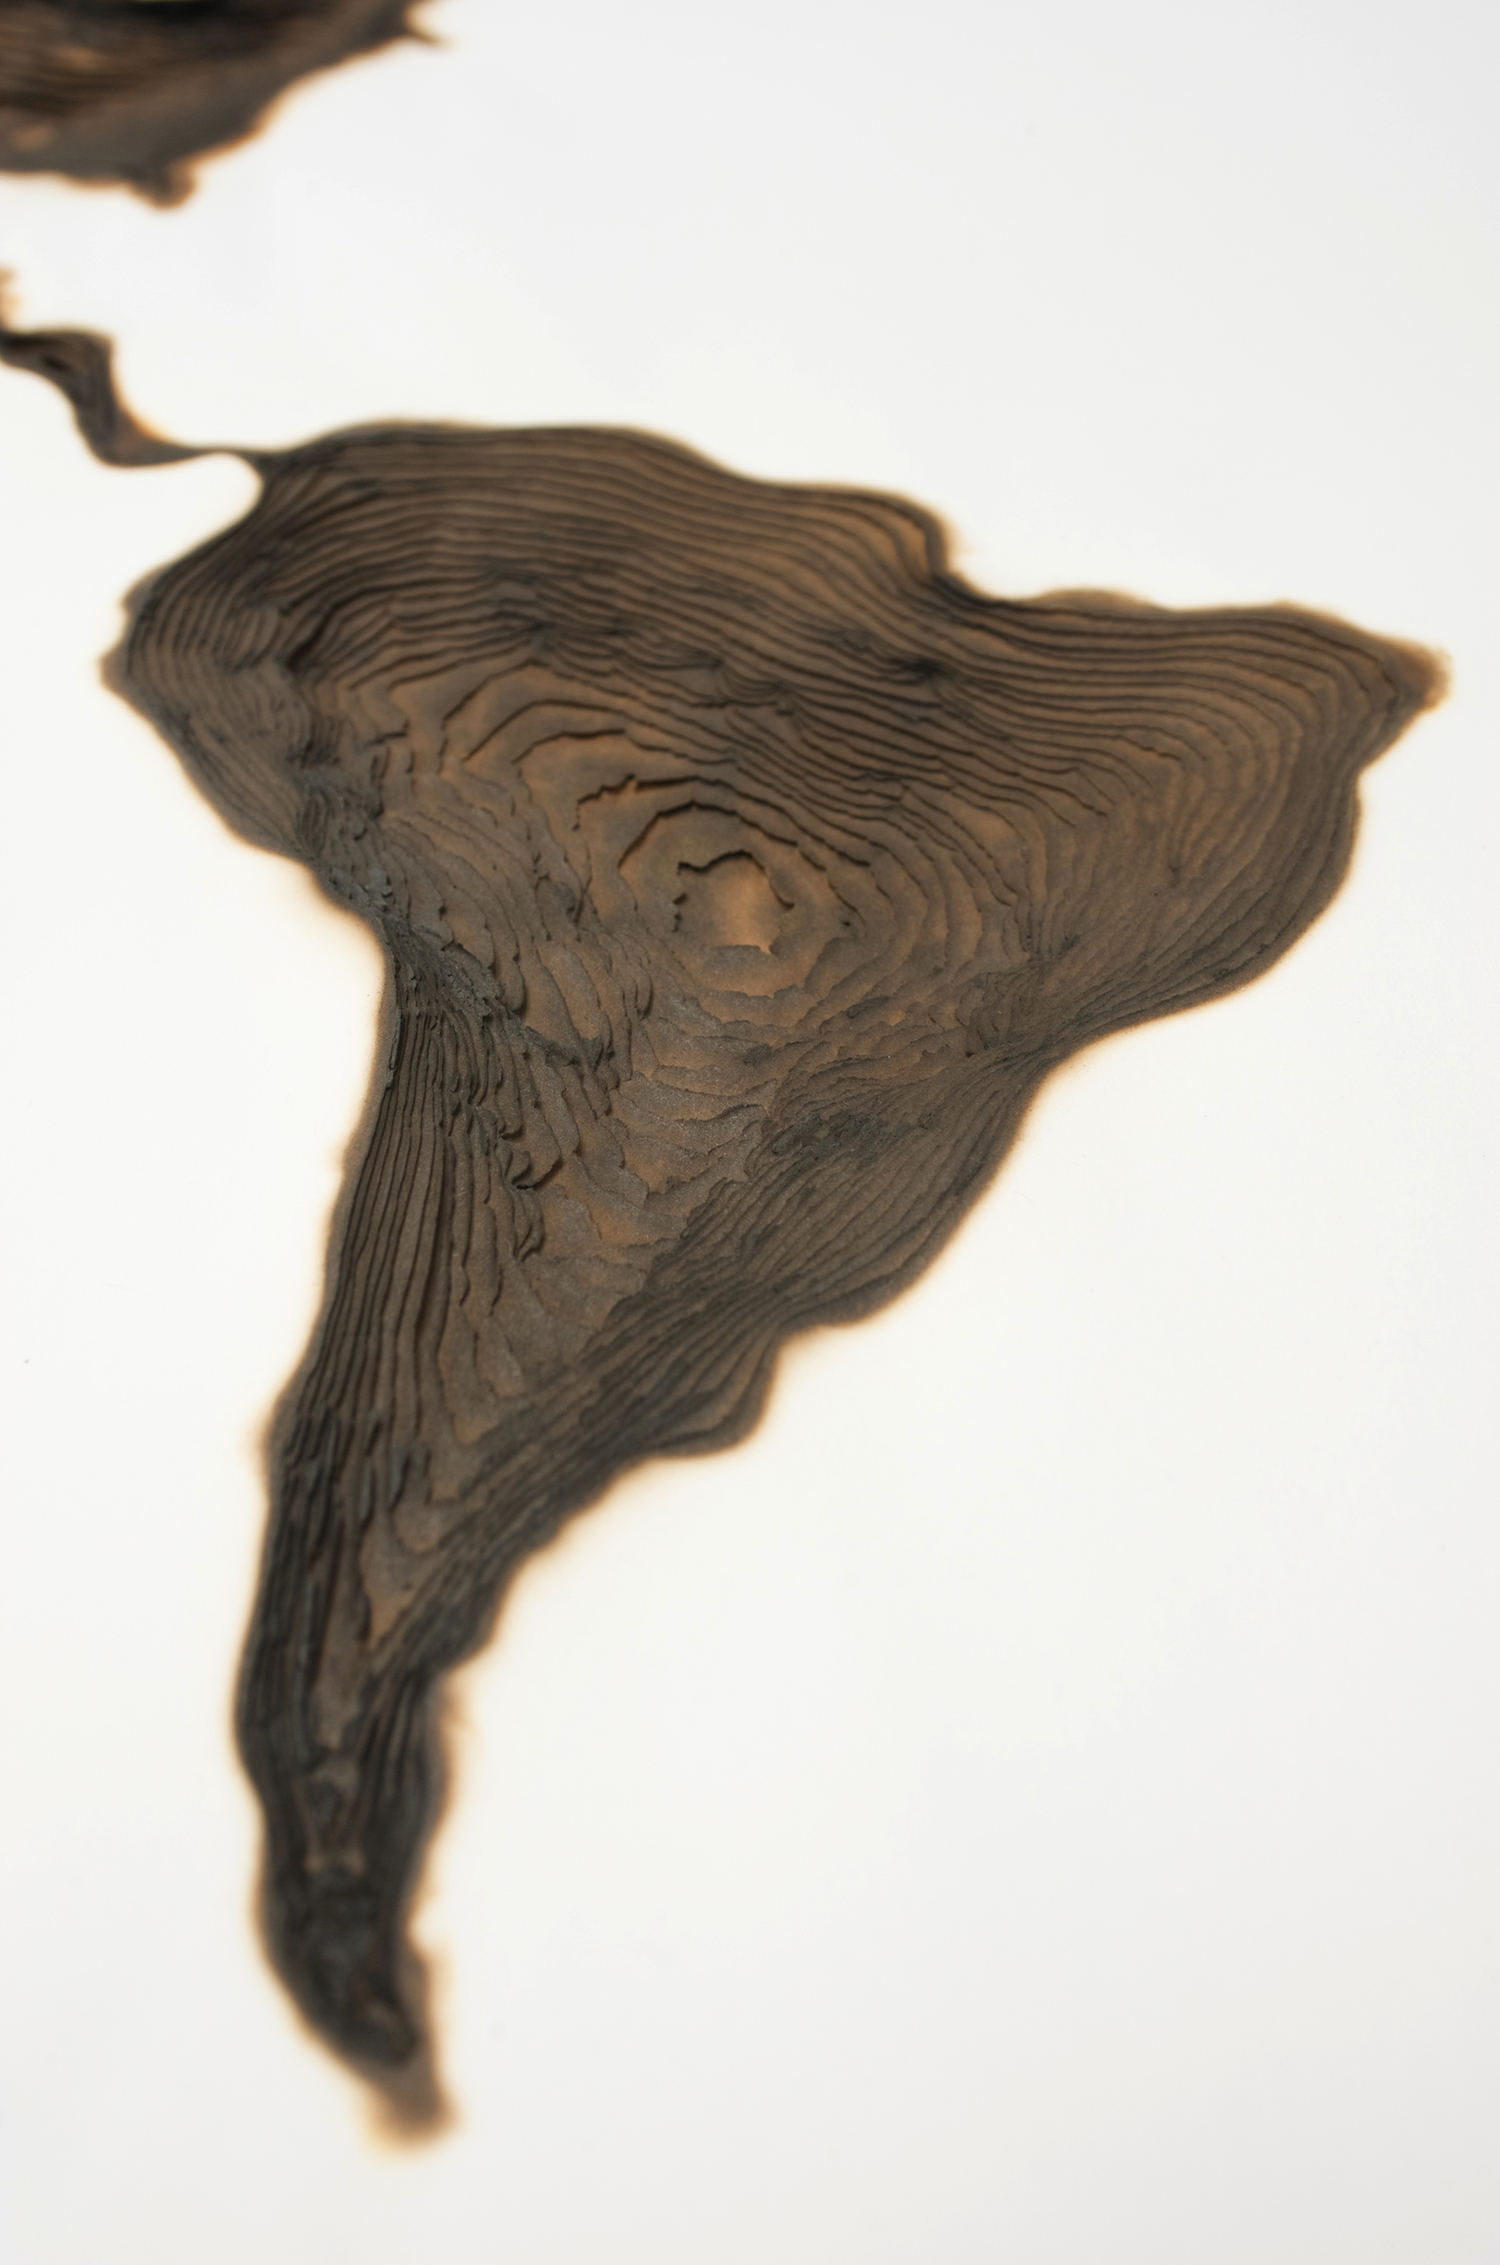 Kate MccGwire, Insular, 2008. Framed piece 50 layers of paper, burnt